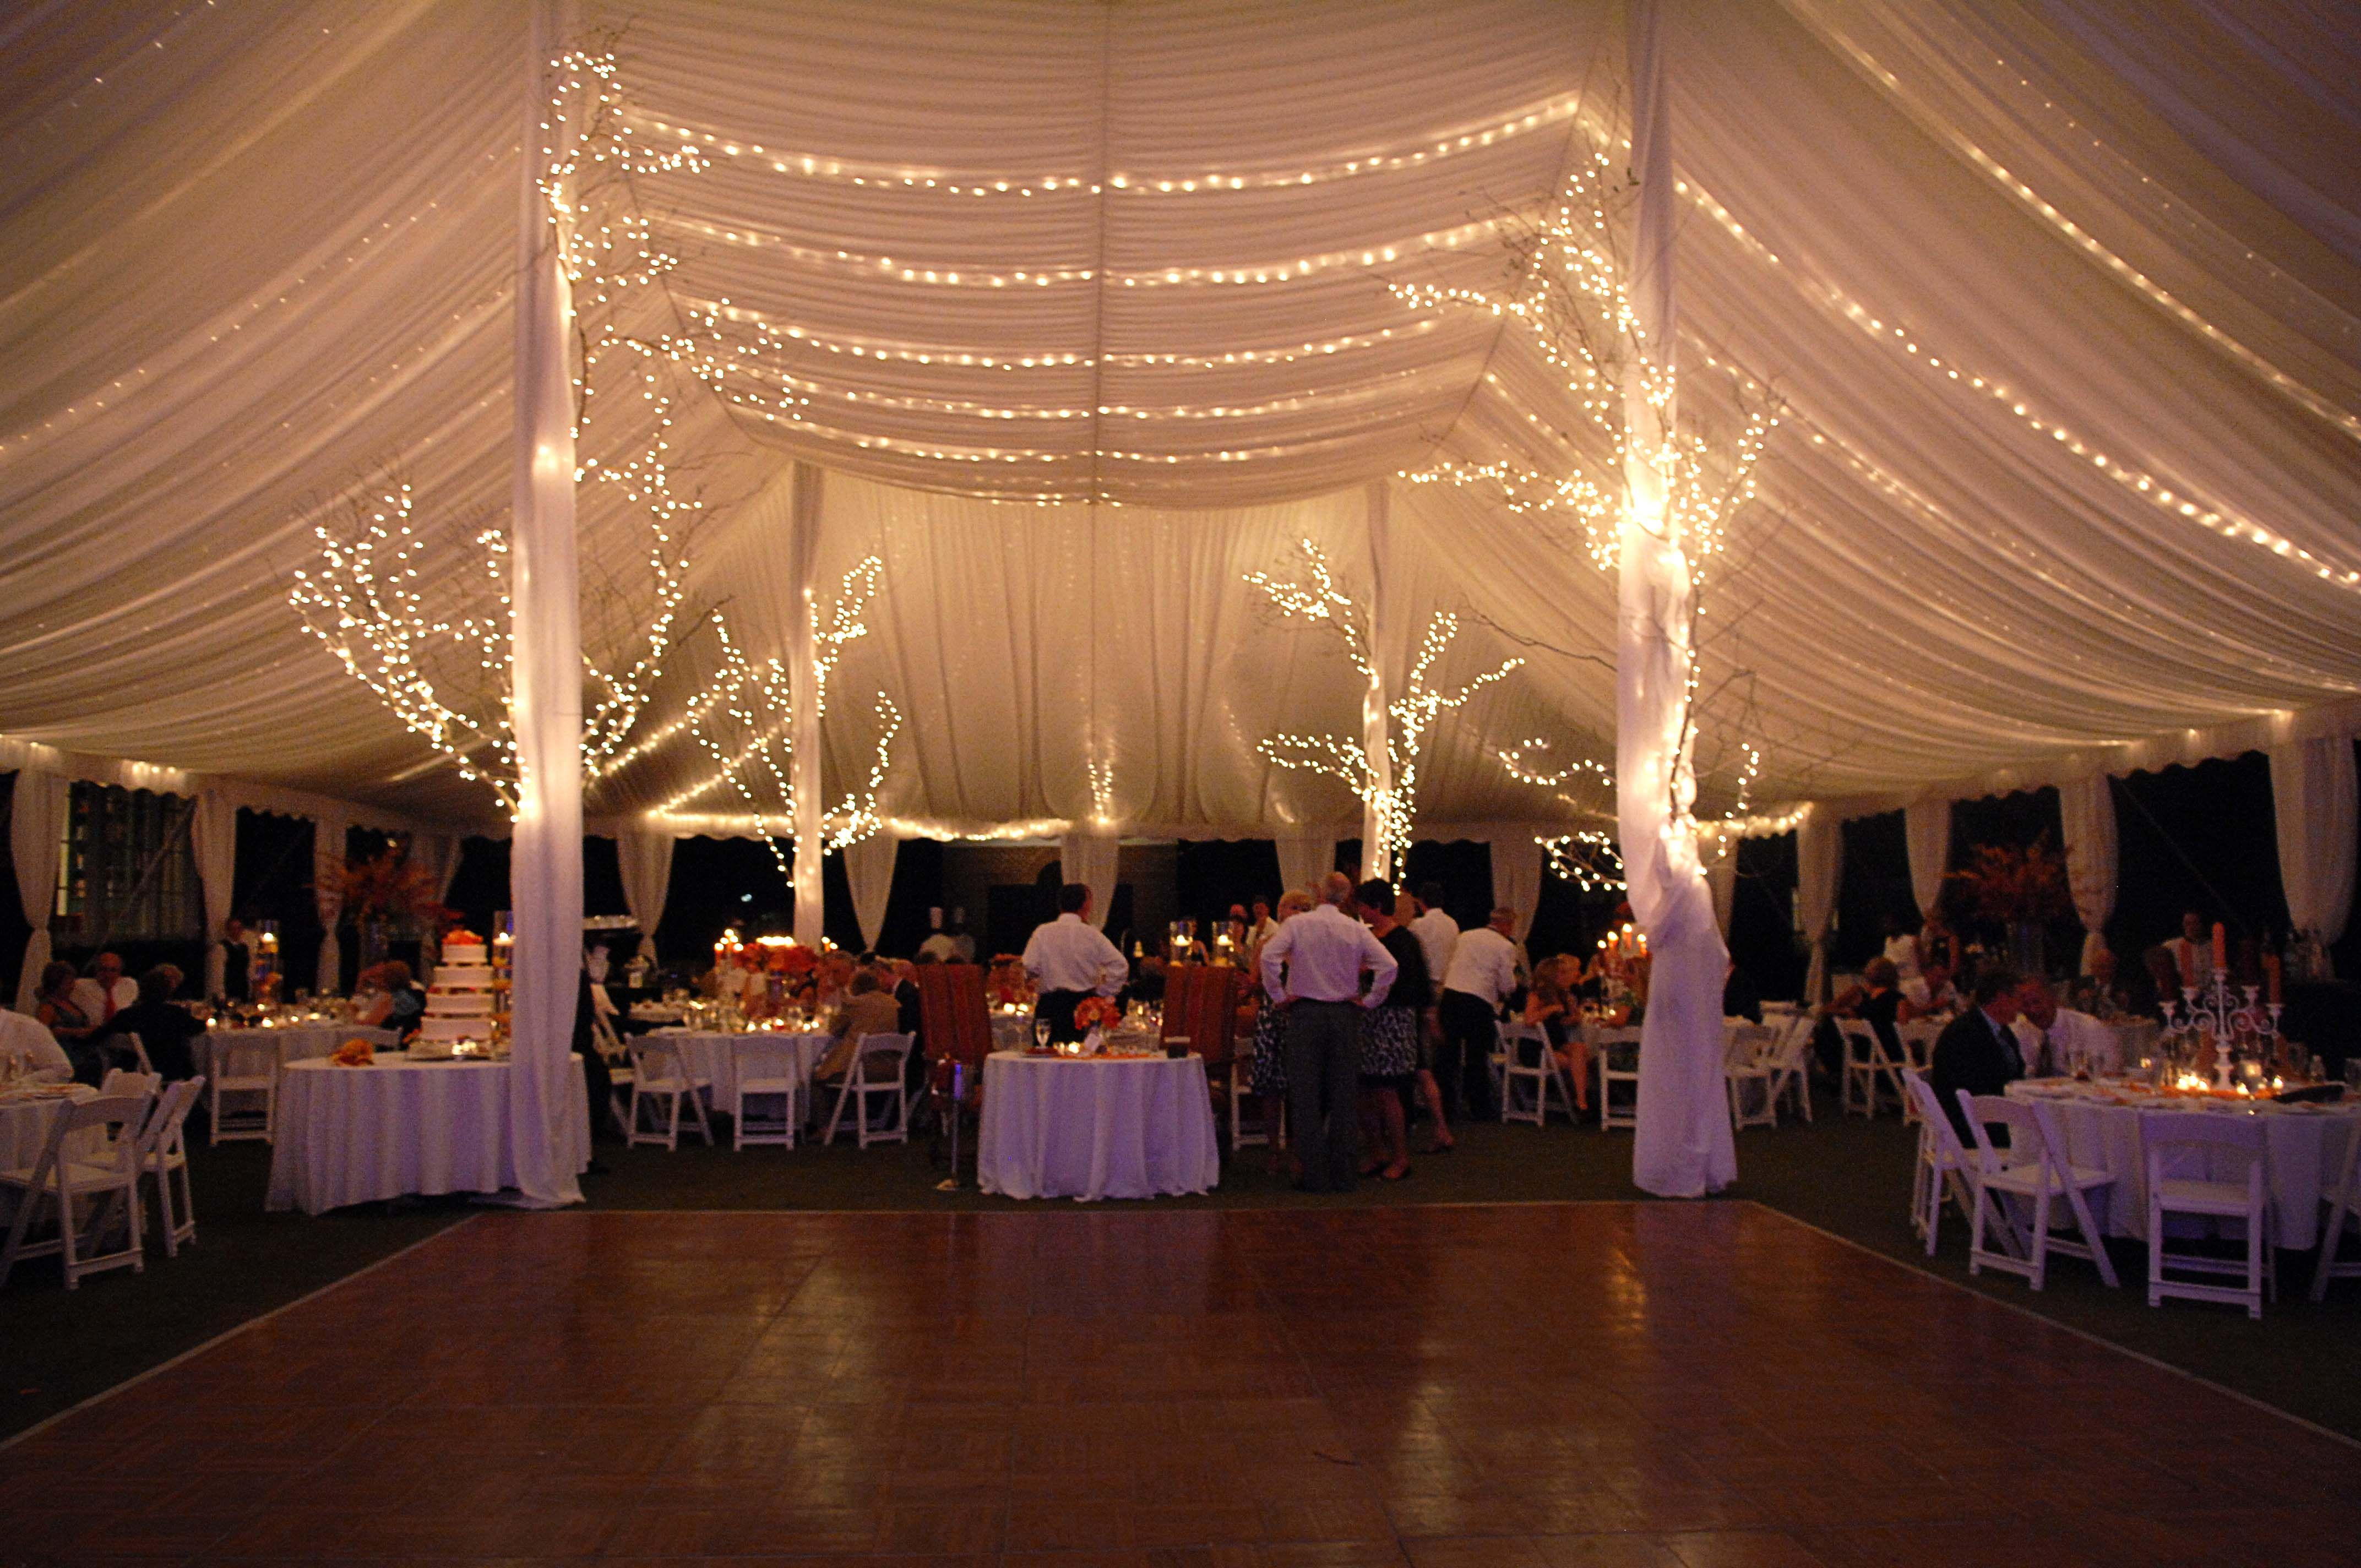 Dazzling and Stunning Outdoor Wedding Decorations & Google Image Result for http://www.savannahspecialevents.com/image ...